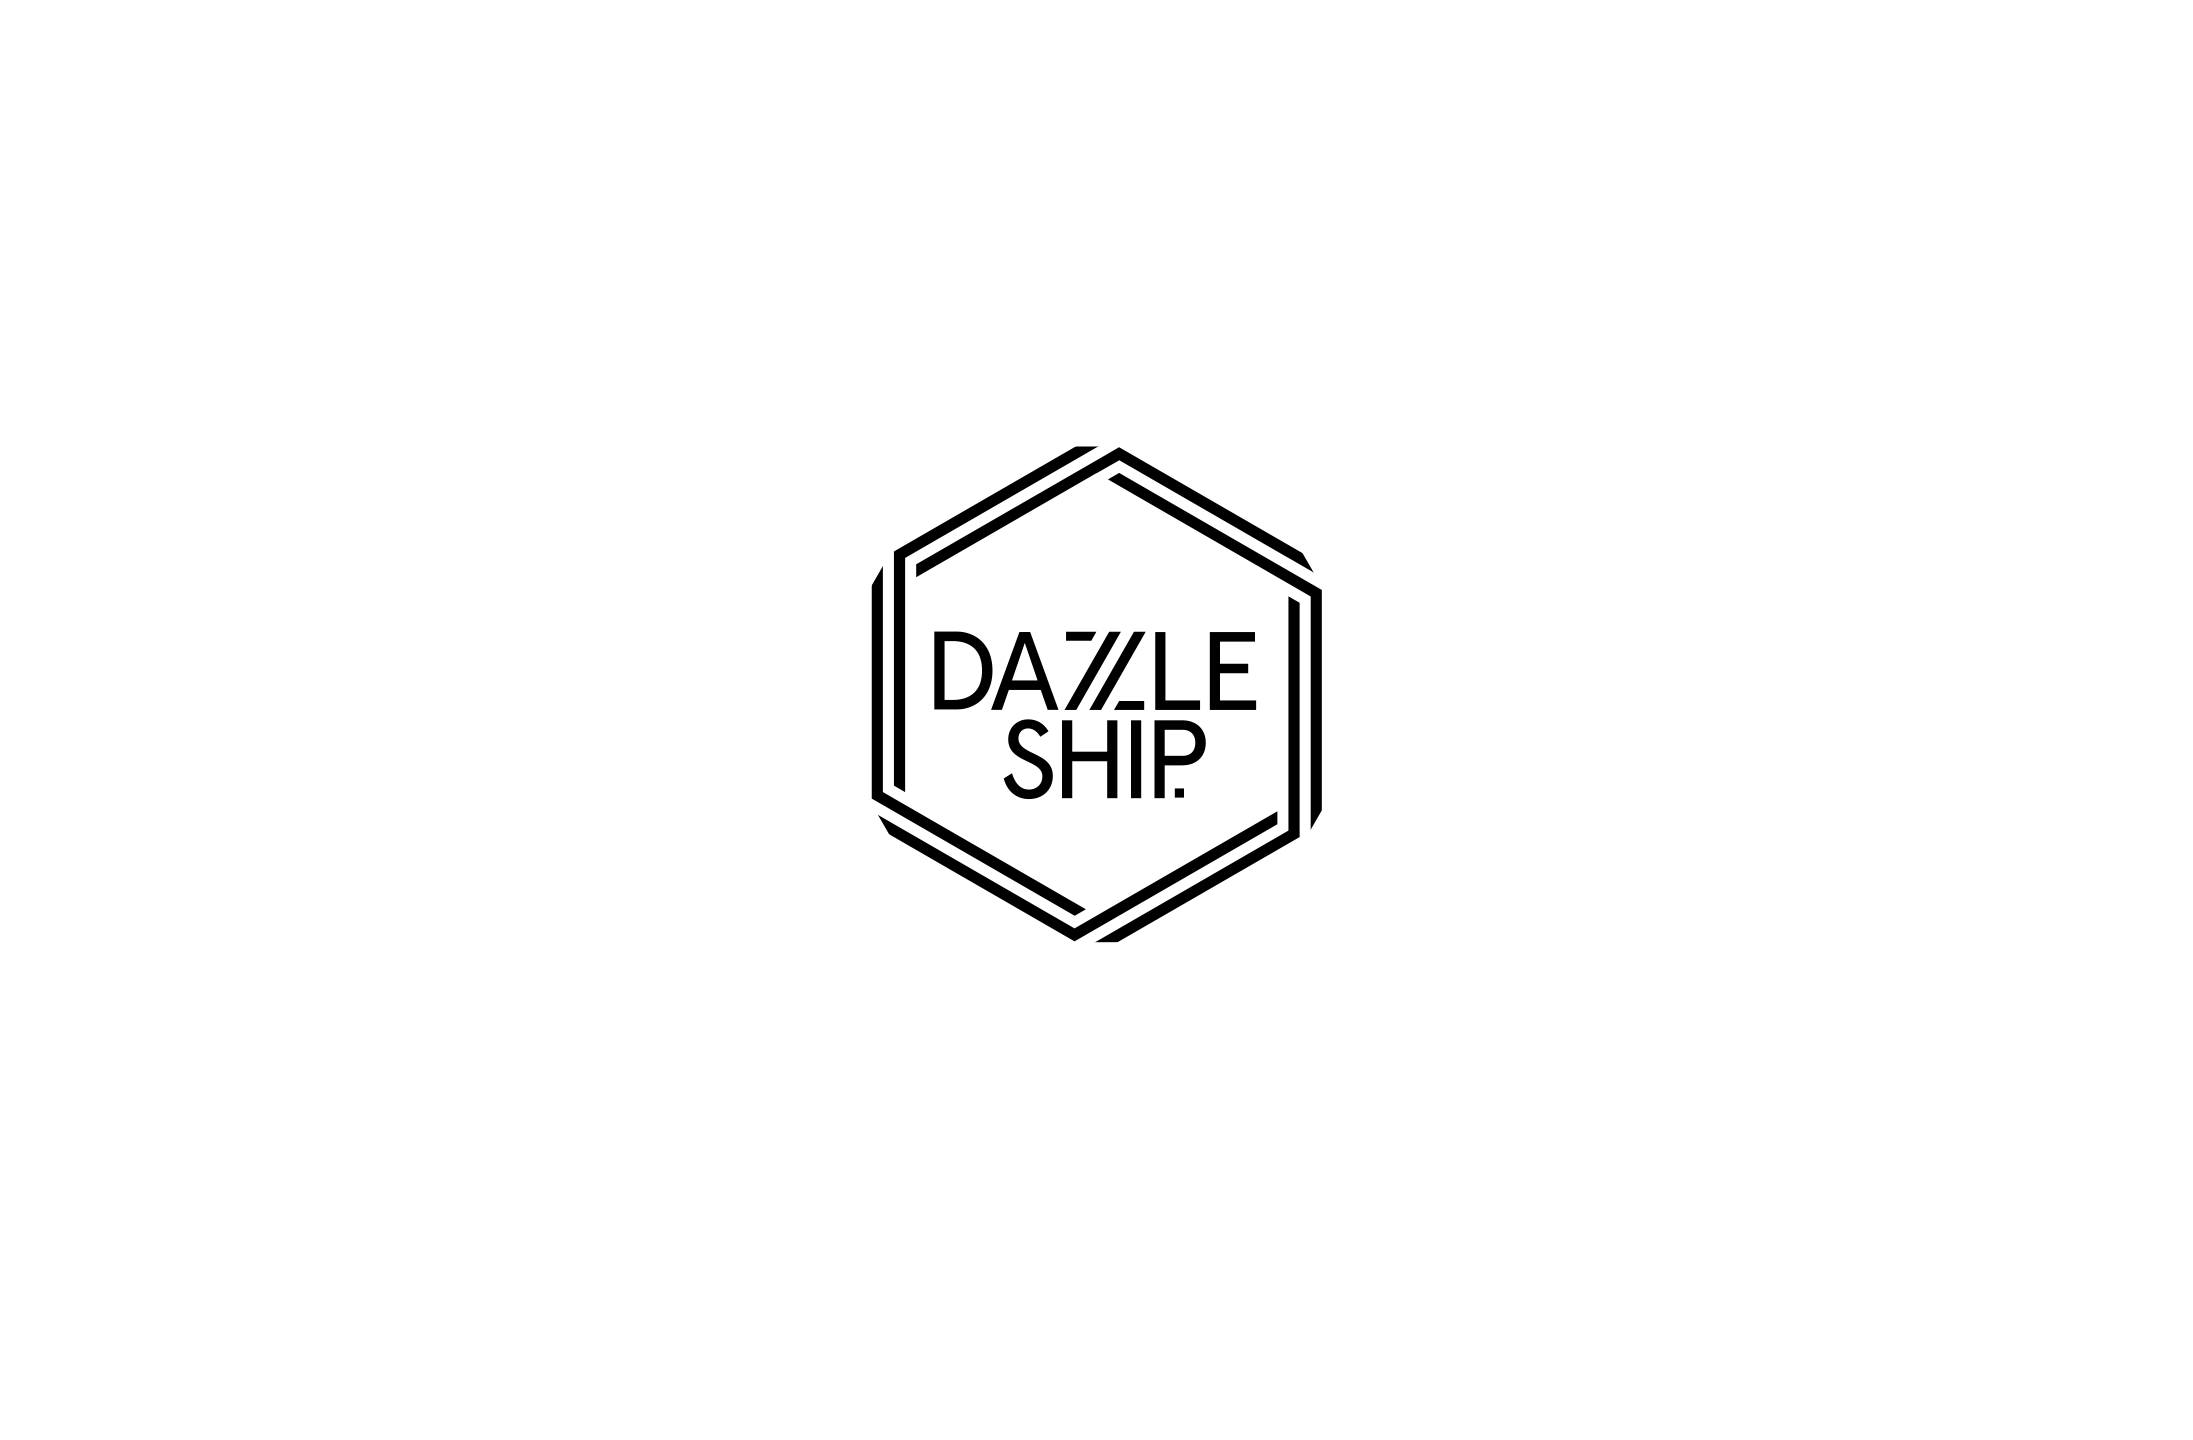 Logo design for motion graphics studio, Dazzle Ship